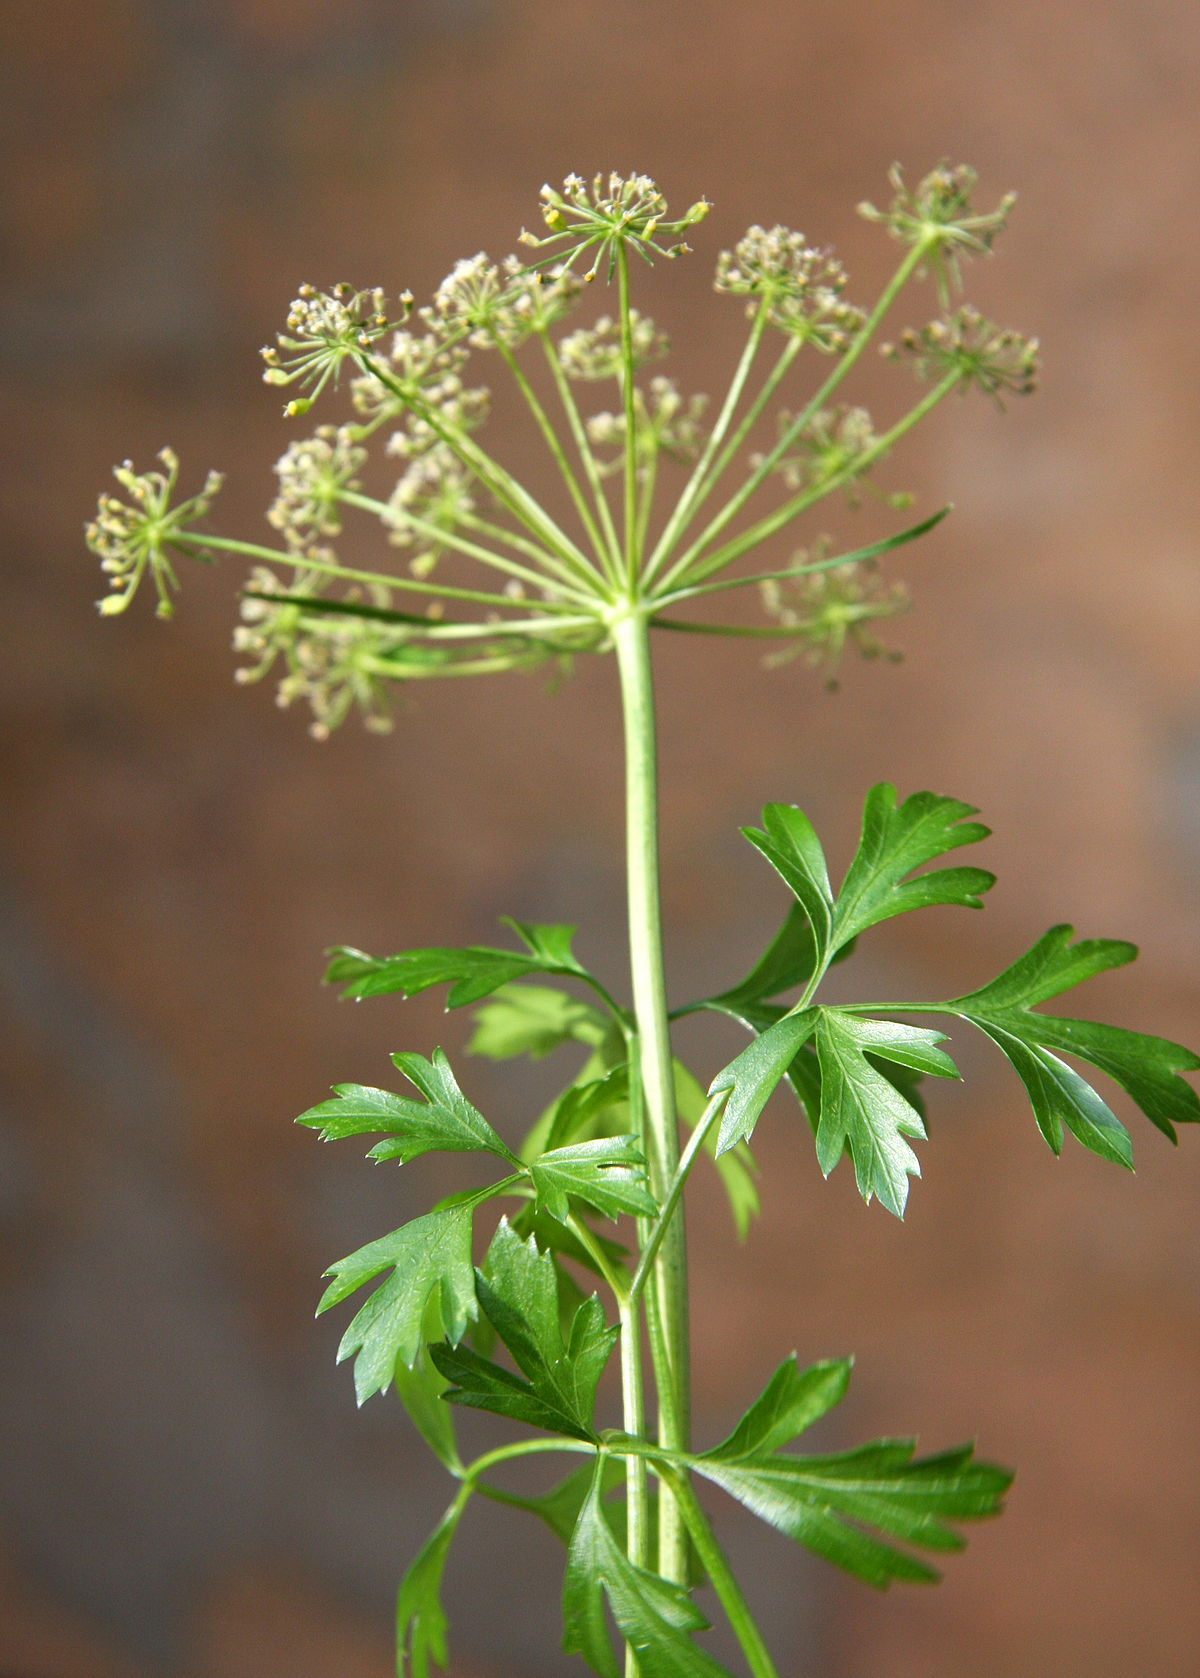 Parsley - Wikipedia